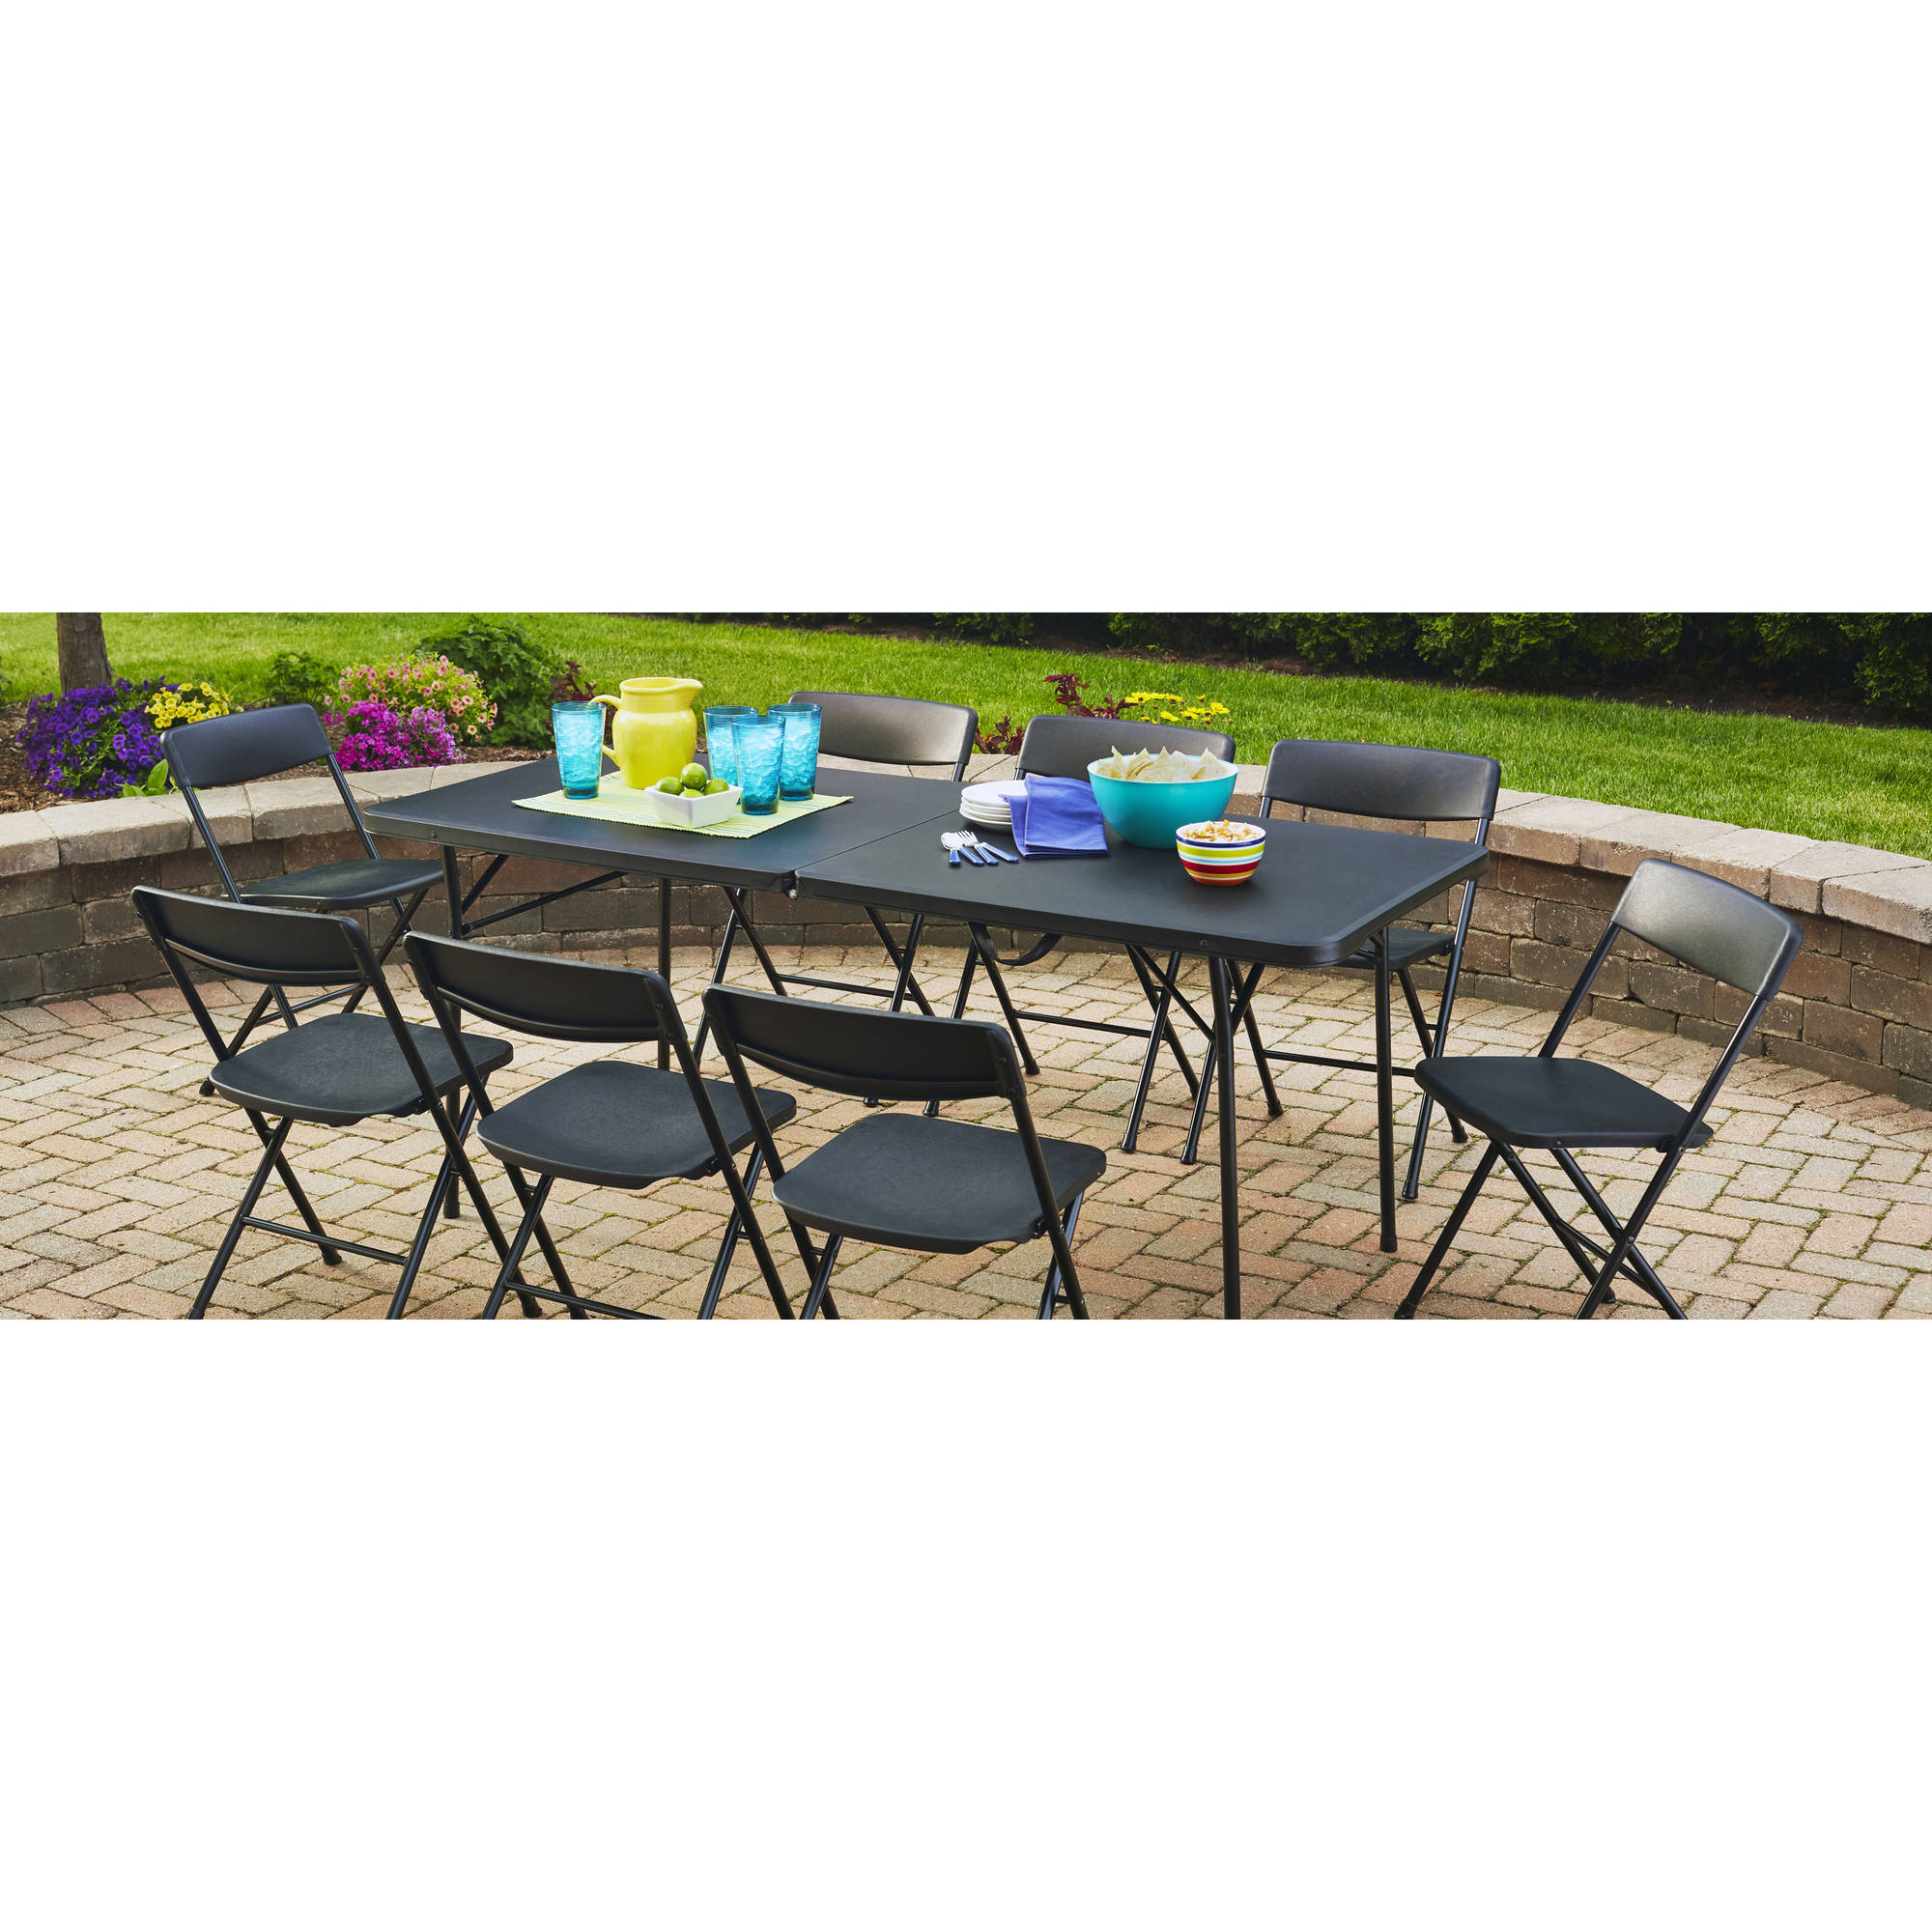 Mainstays 6u0027 Fold In Half Table, Black Image 1 ...